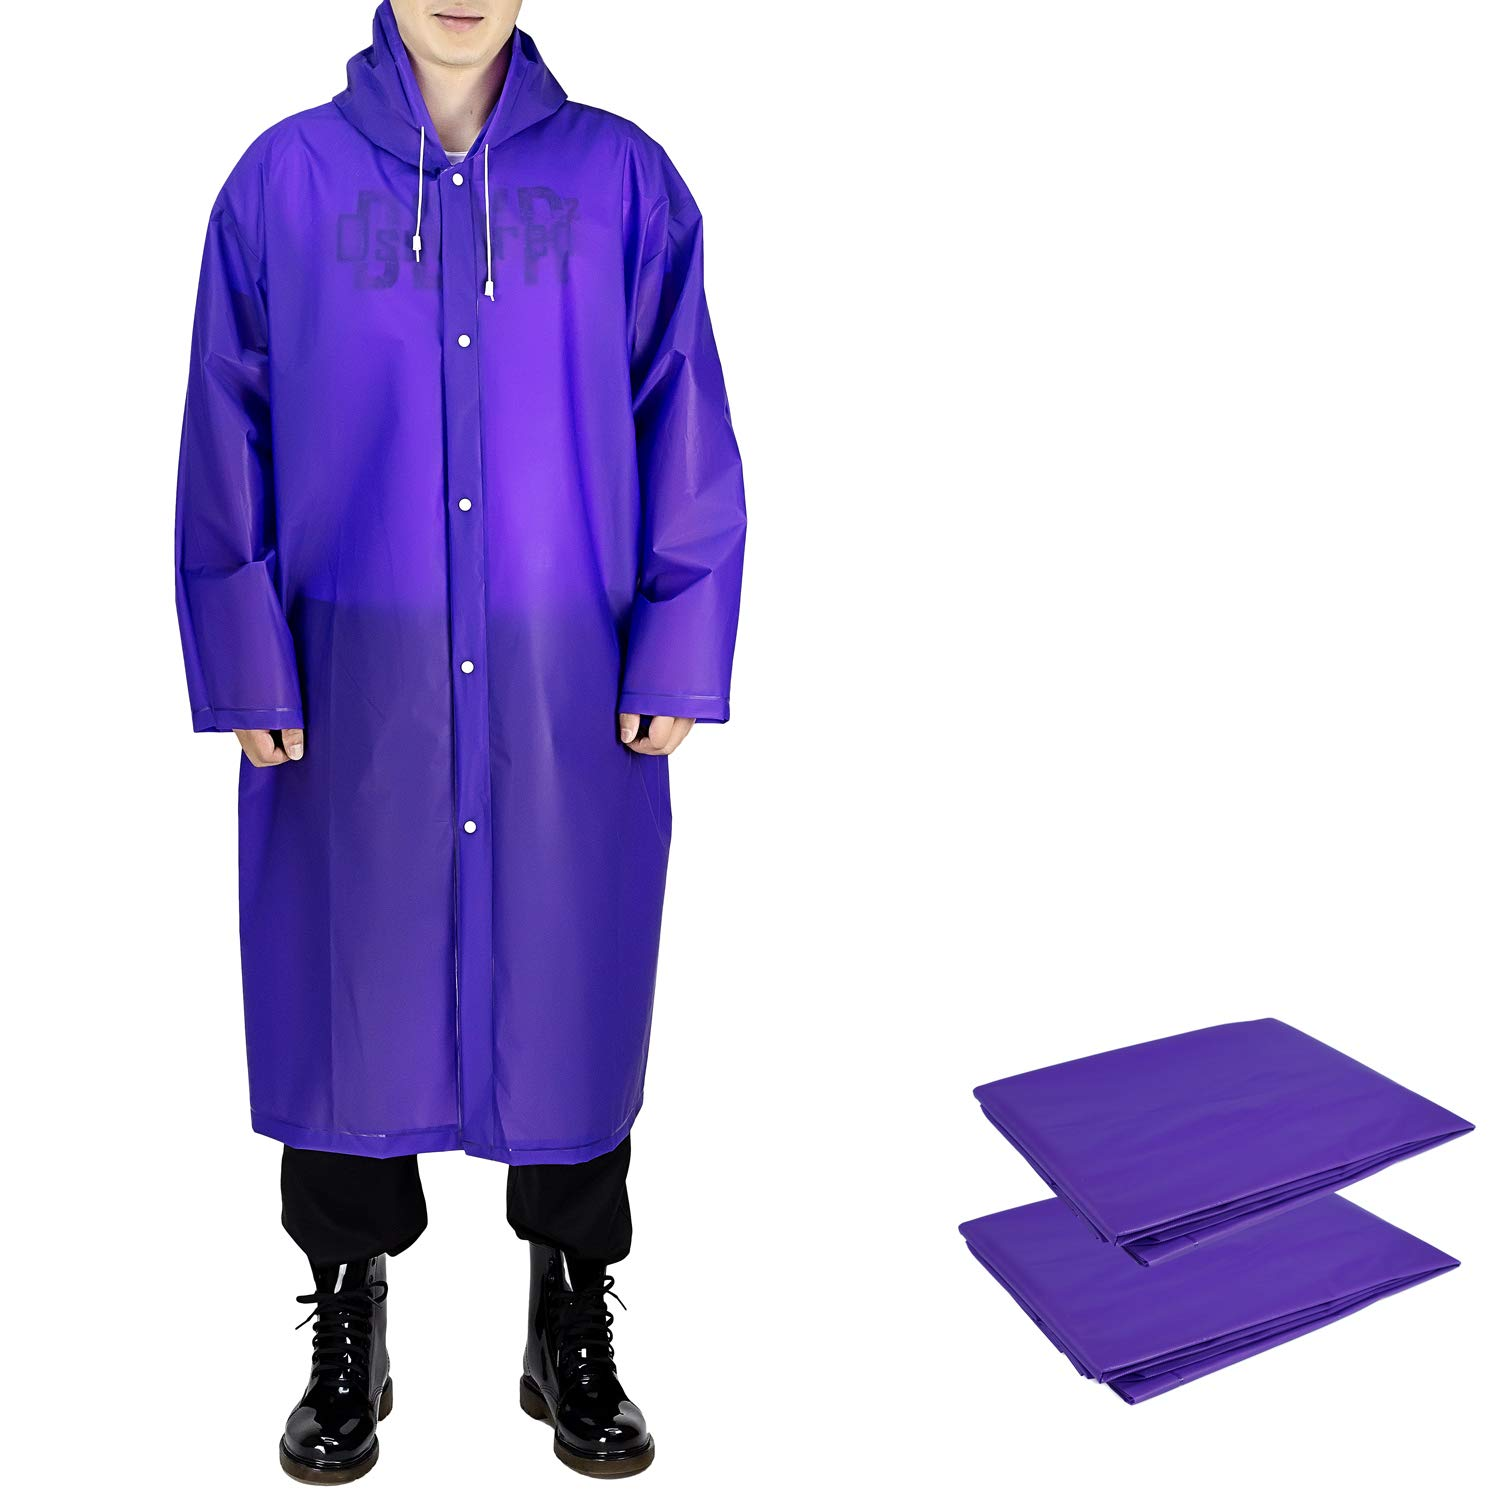 ANTVEE Rain Ponchos 2 Packs for Adults with Drawstring Hood and Sleeves - for Hiking, Backpacking, Camping or Traveling (Purple) by ANTVEE